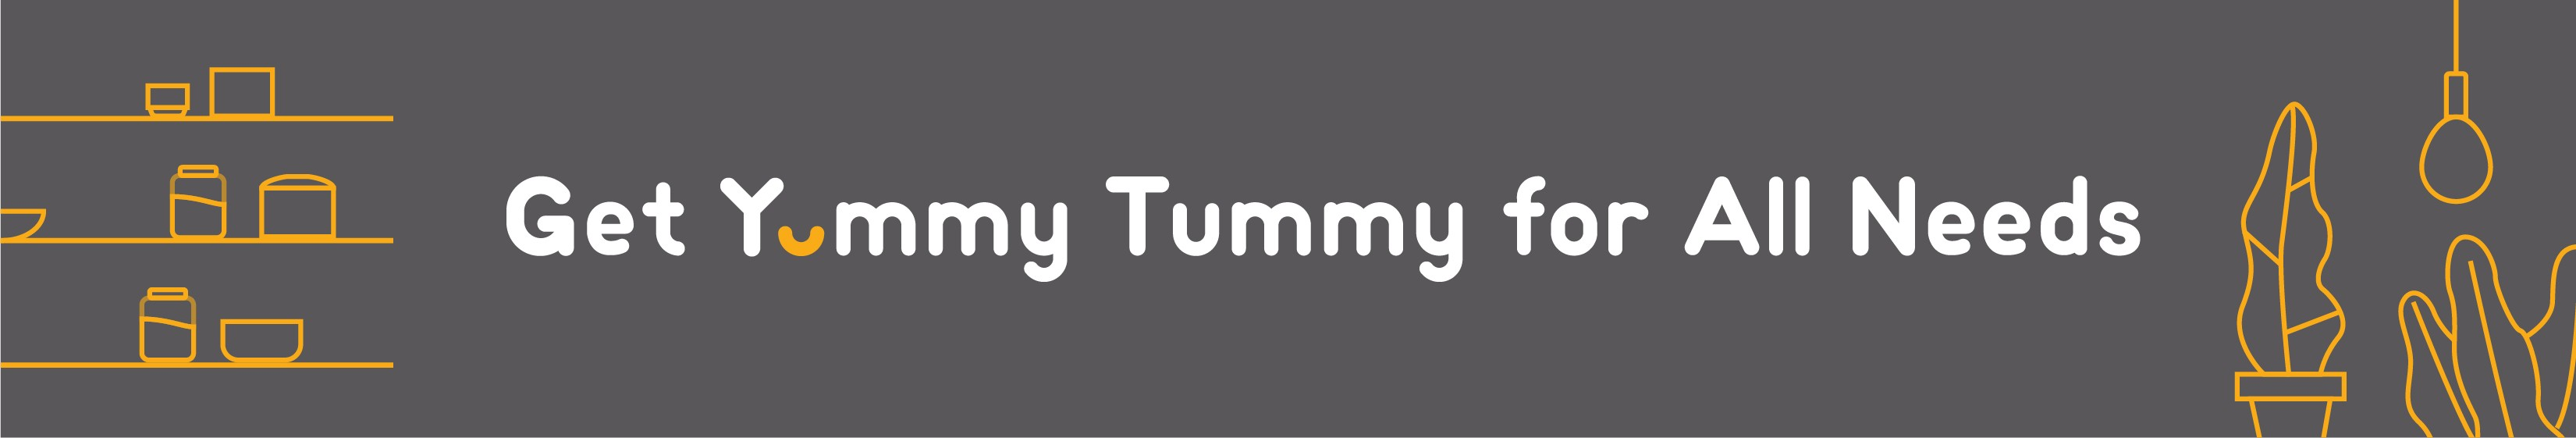 SoftBank Leads Investment in Catering Startup Yummy Corp